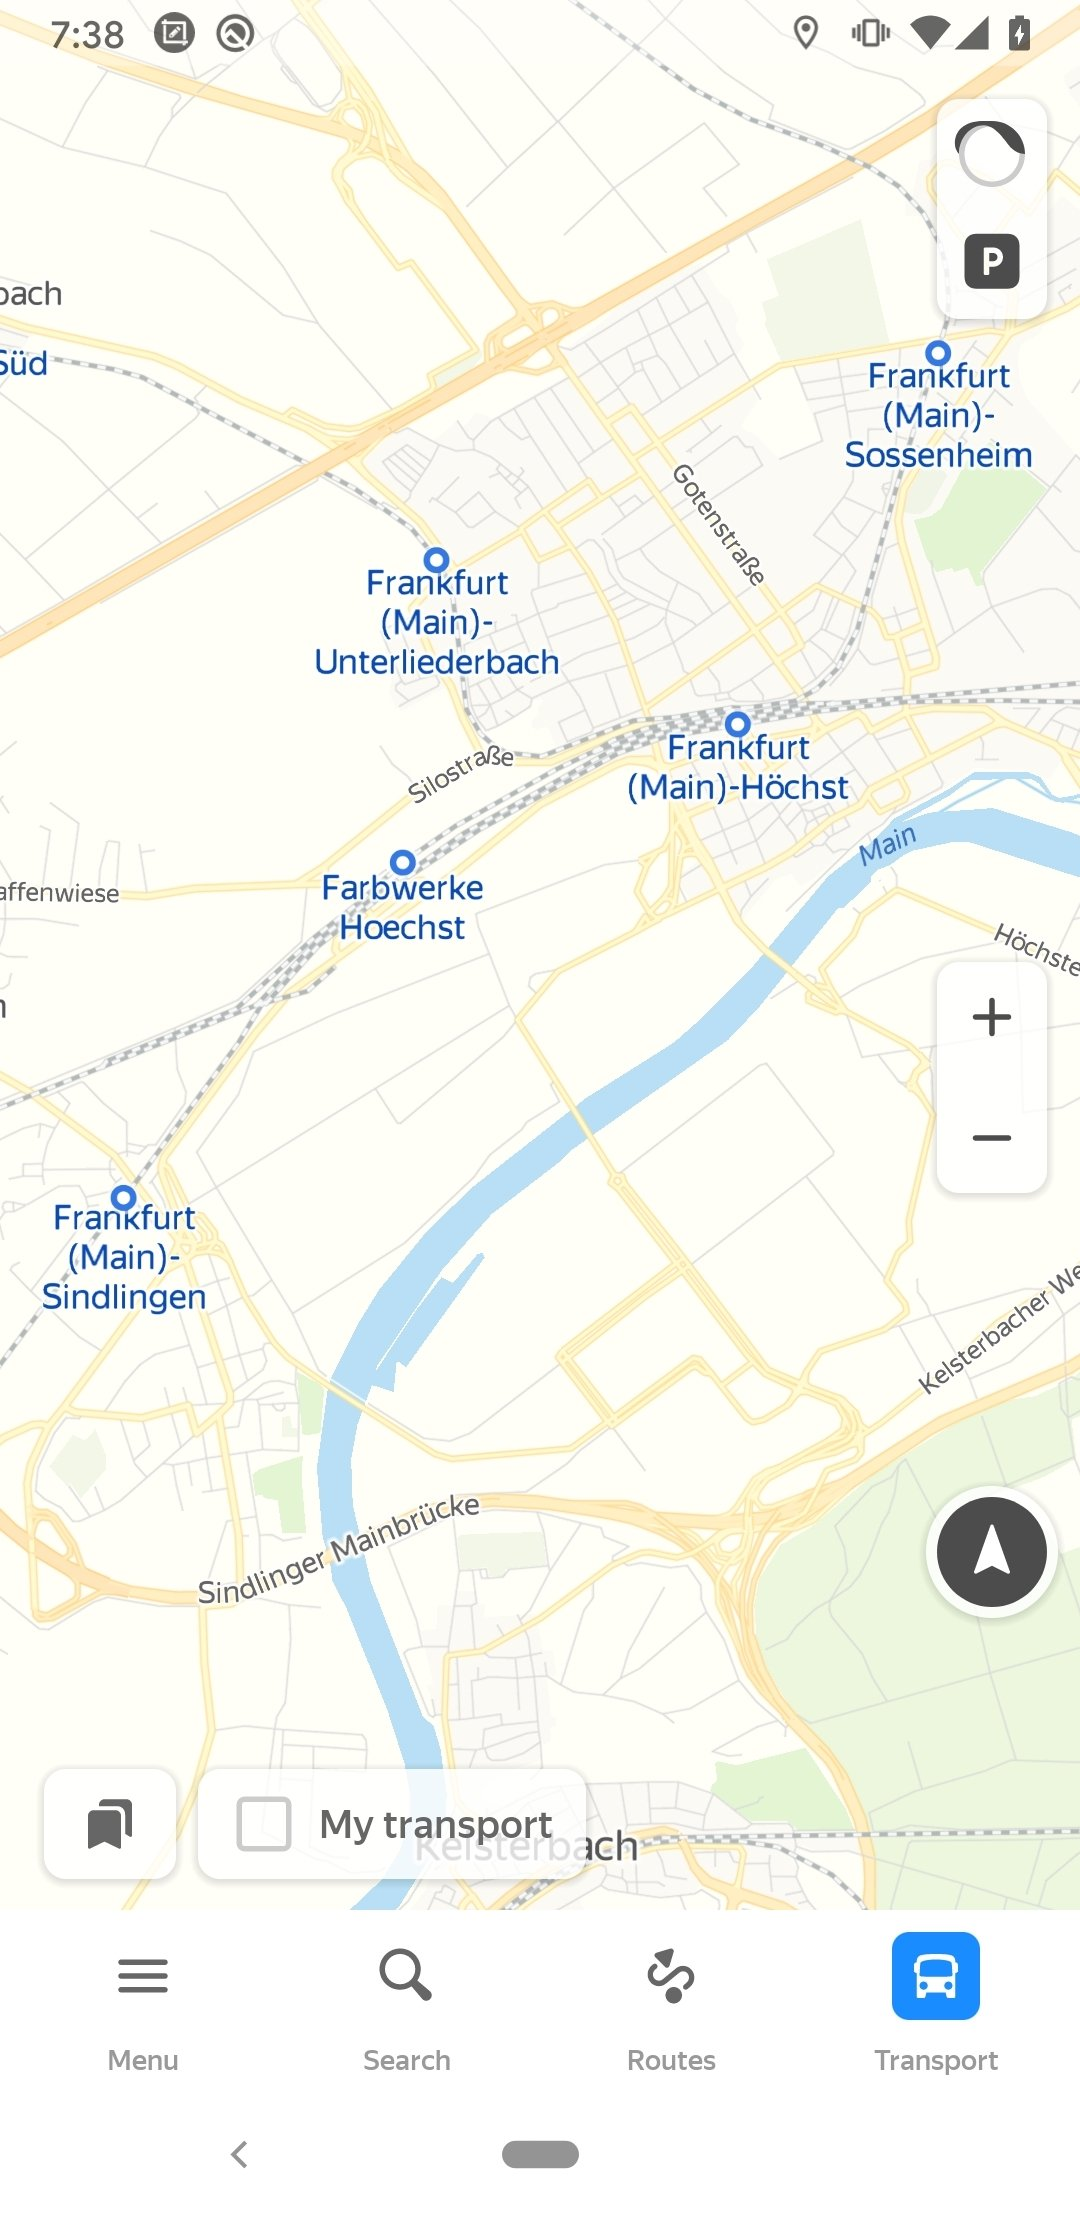 Yandex.Maps 8.1.3 - Download for Android APK Free on iphone android, google maps android, market android, apps android, plex android, gps android,